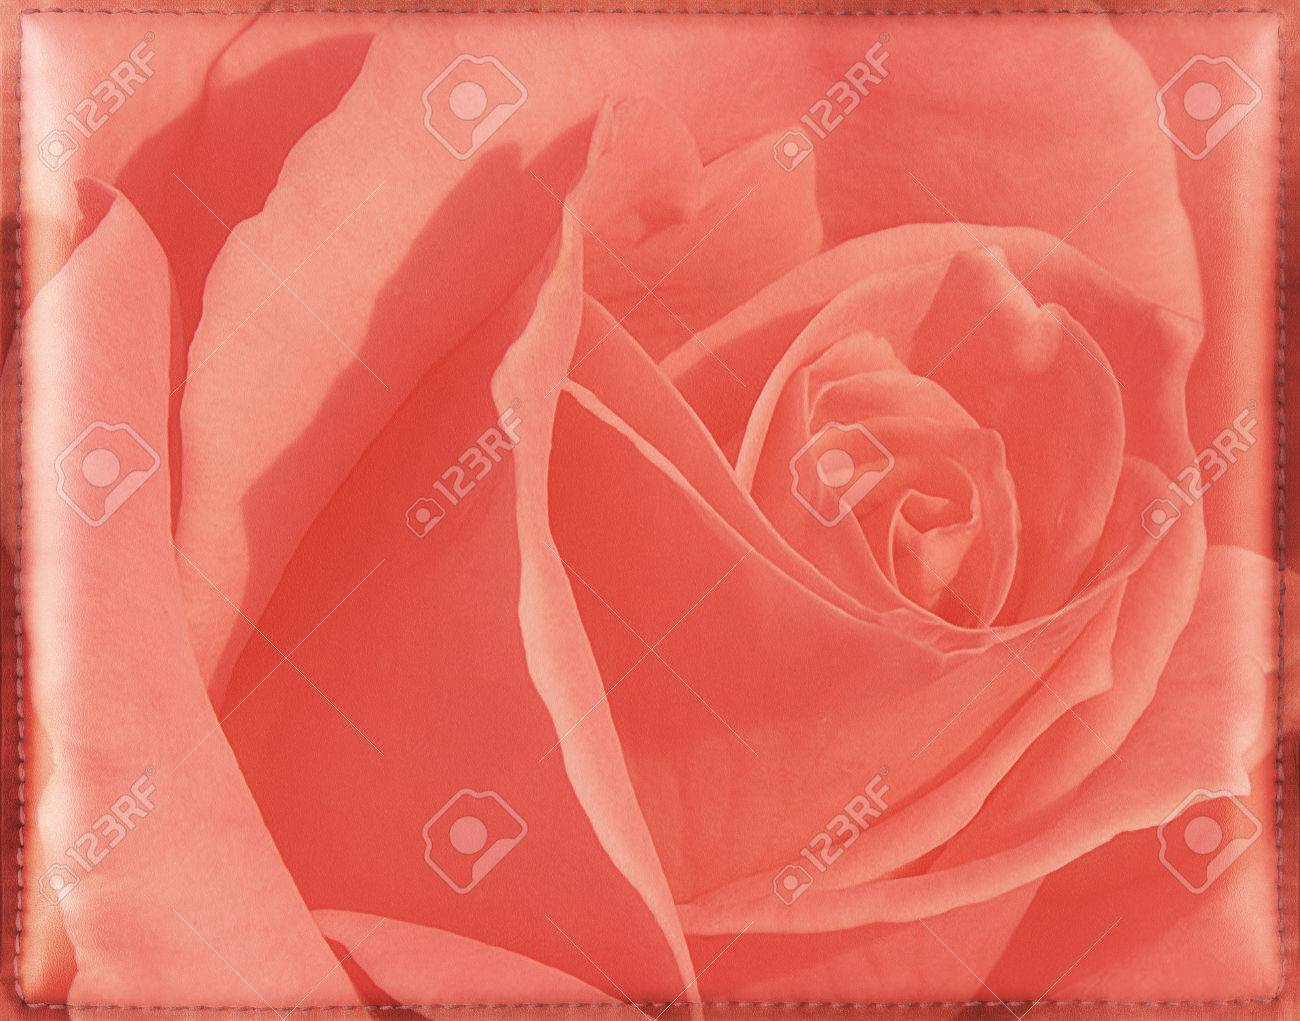 Shiny pink vintage floral background with rose flower  Soft and smooth leather texture with stitched frame  Framework design for your content Stock Photo - 22769171